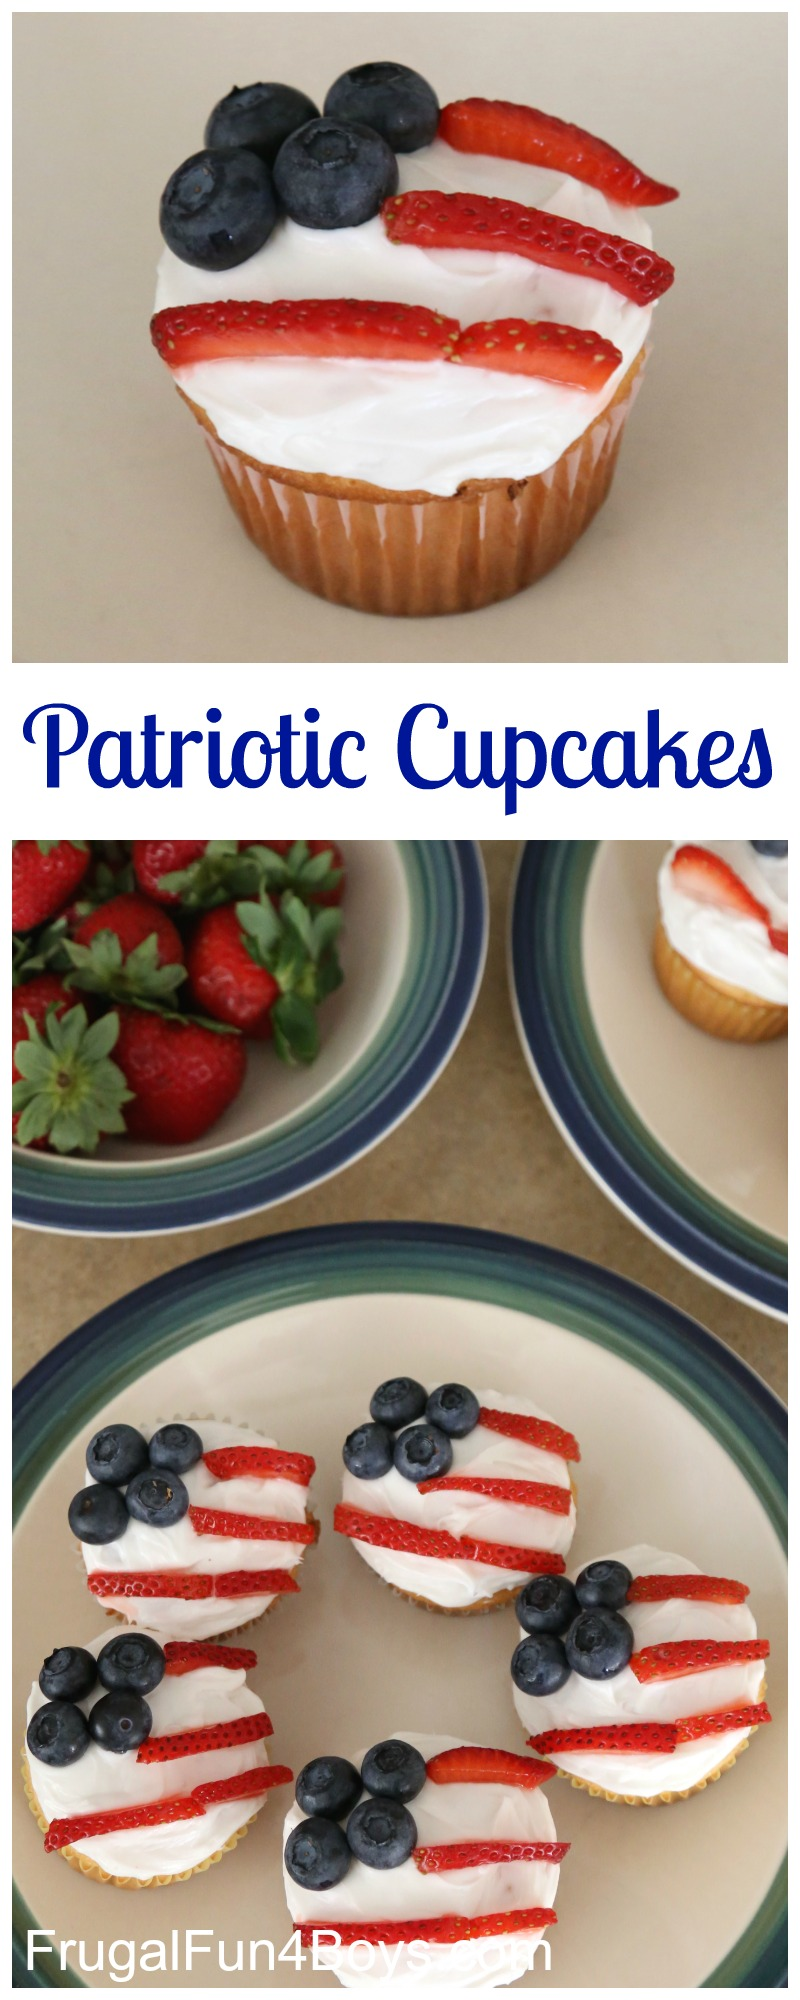 Patriotic Flag Cupcakes for the 4th of July